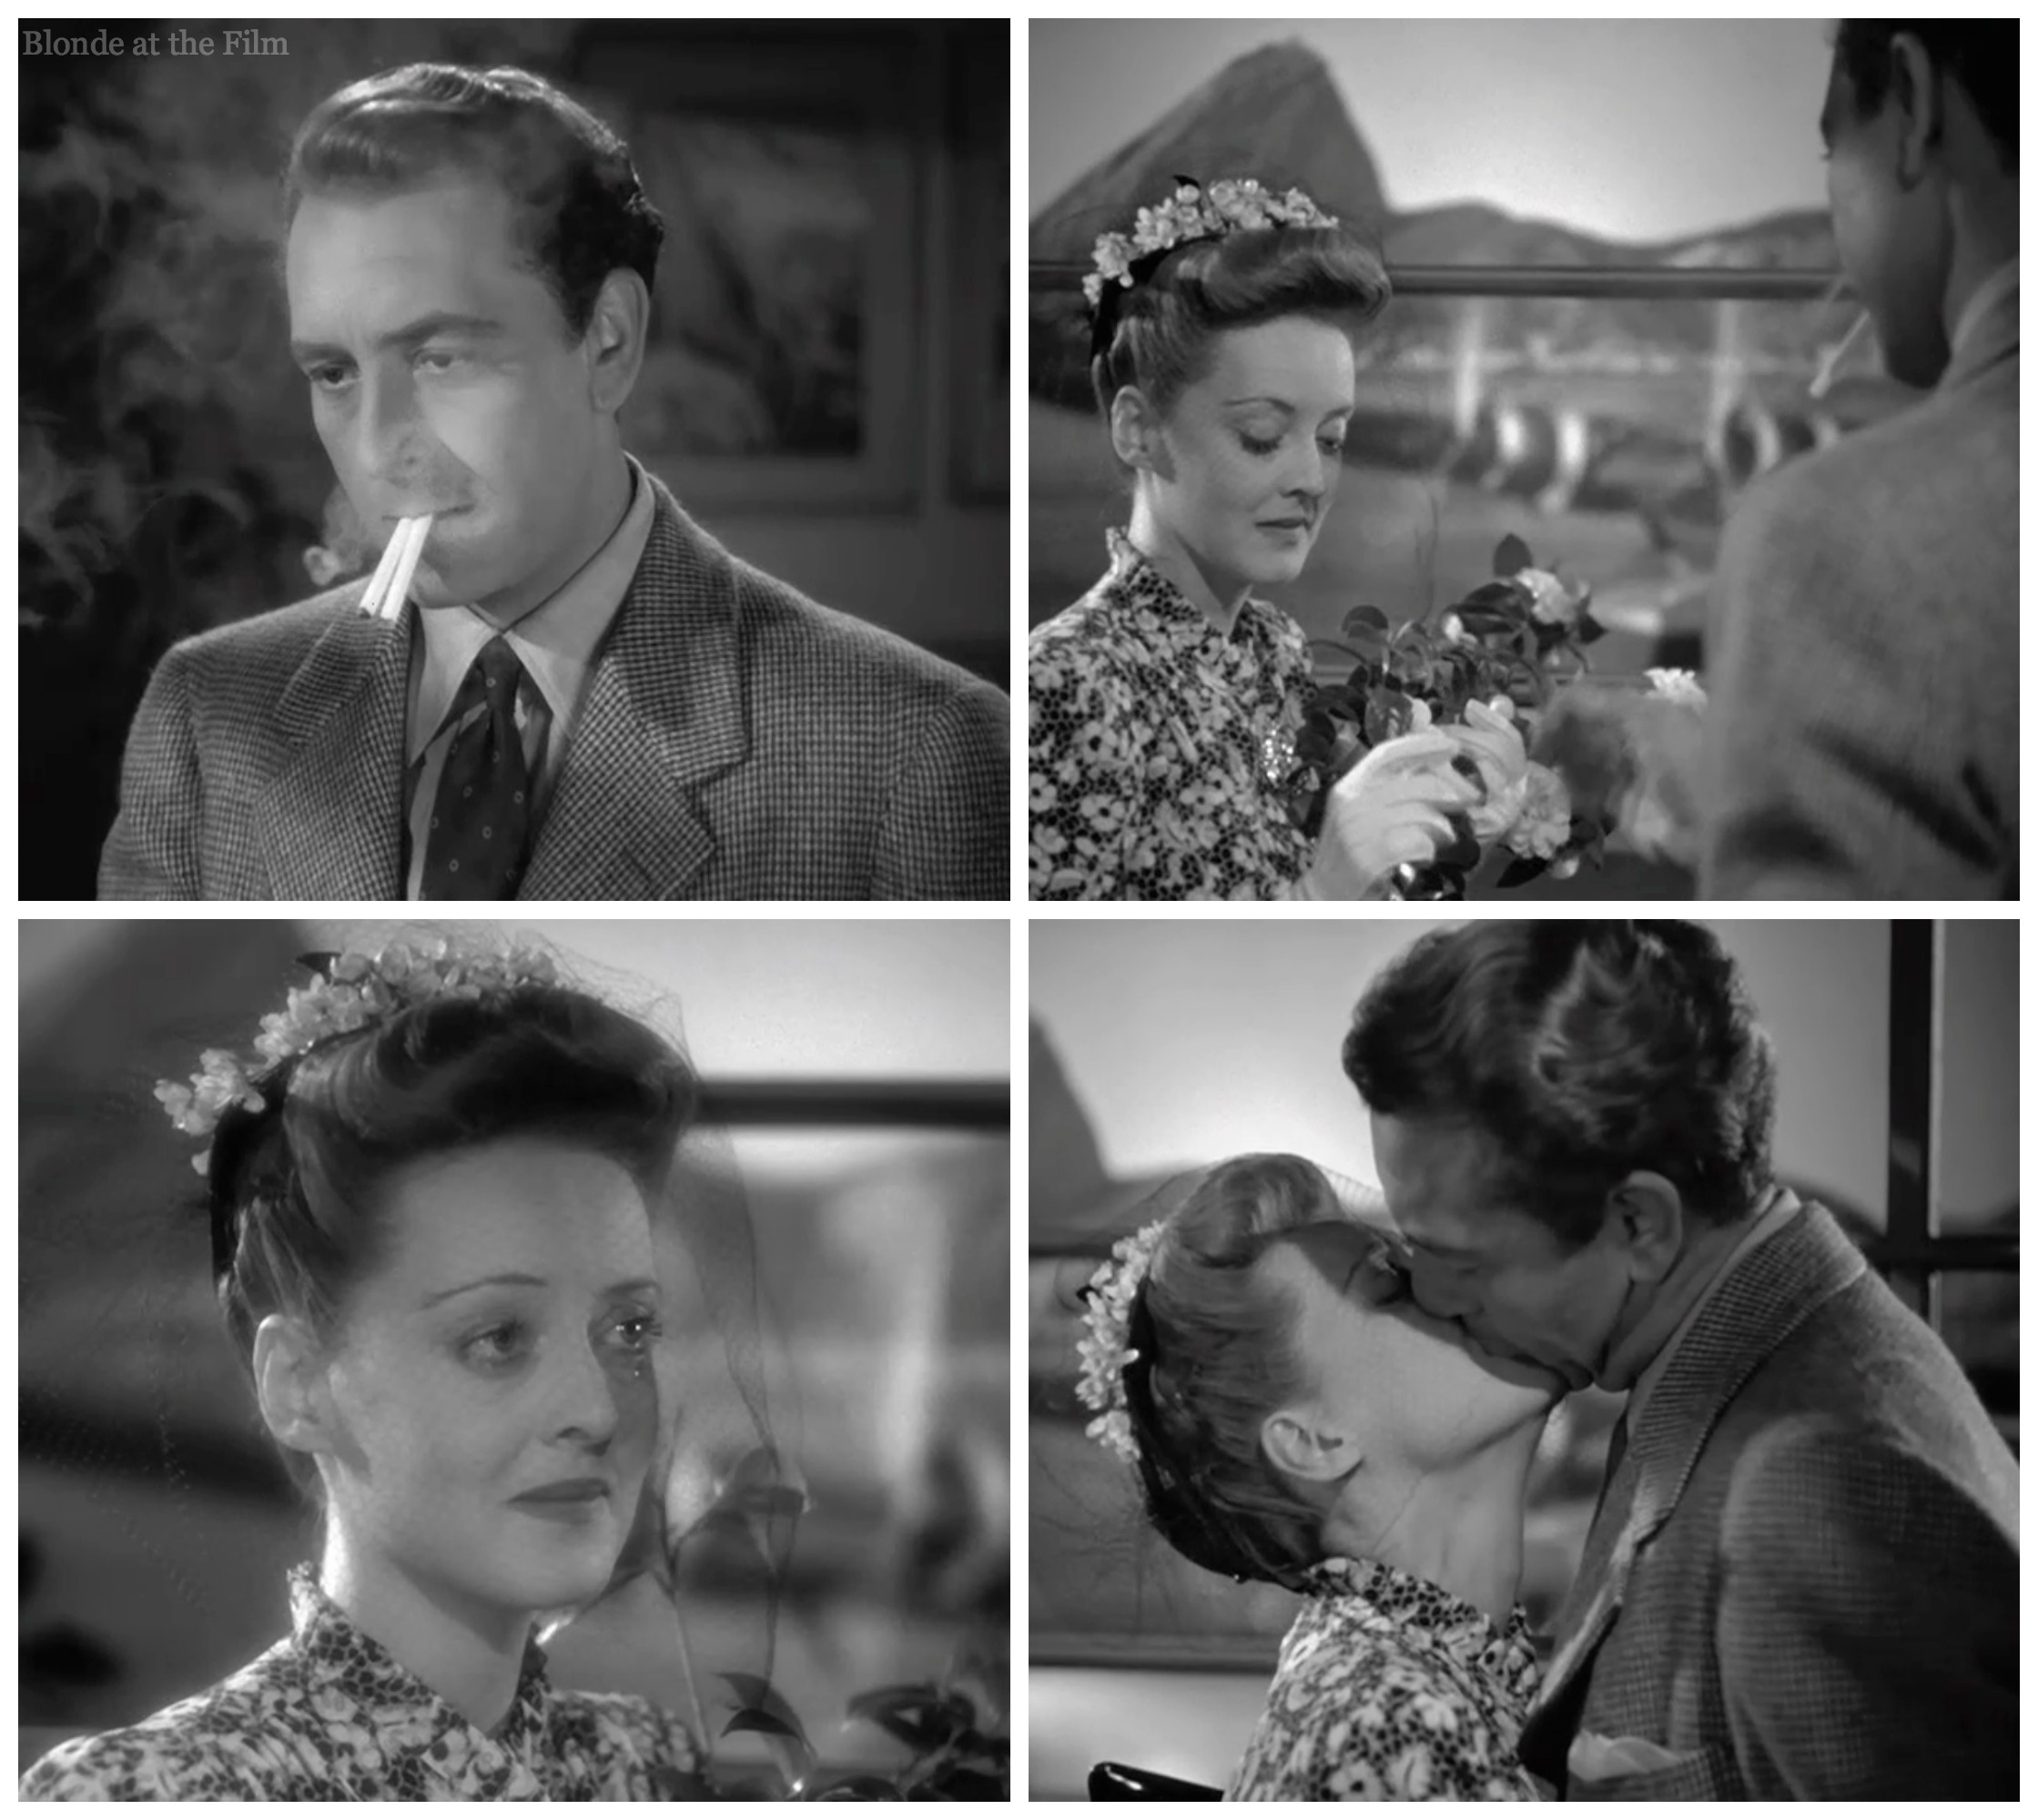 Now, Voyager (1942) – The Blonde at the Film